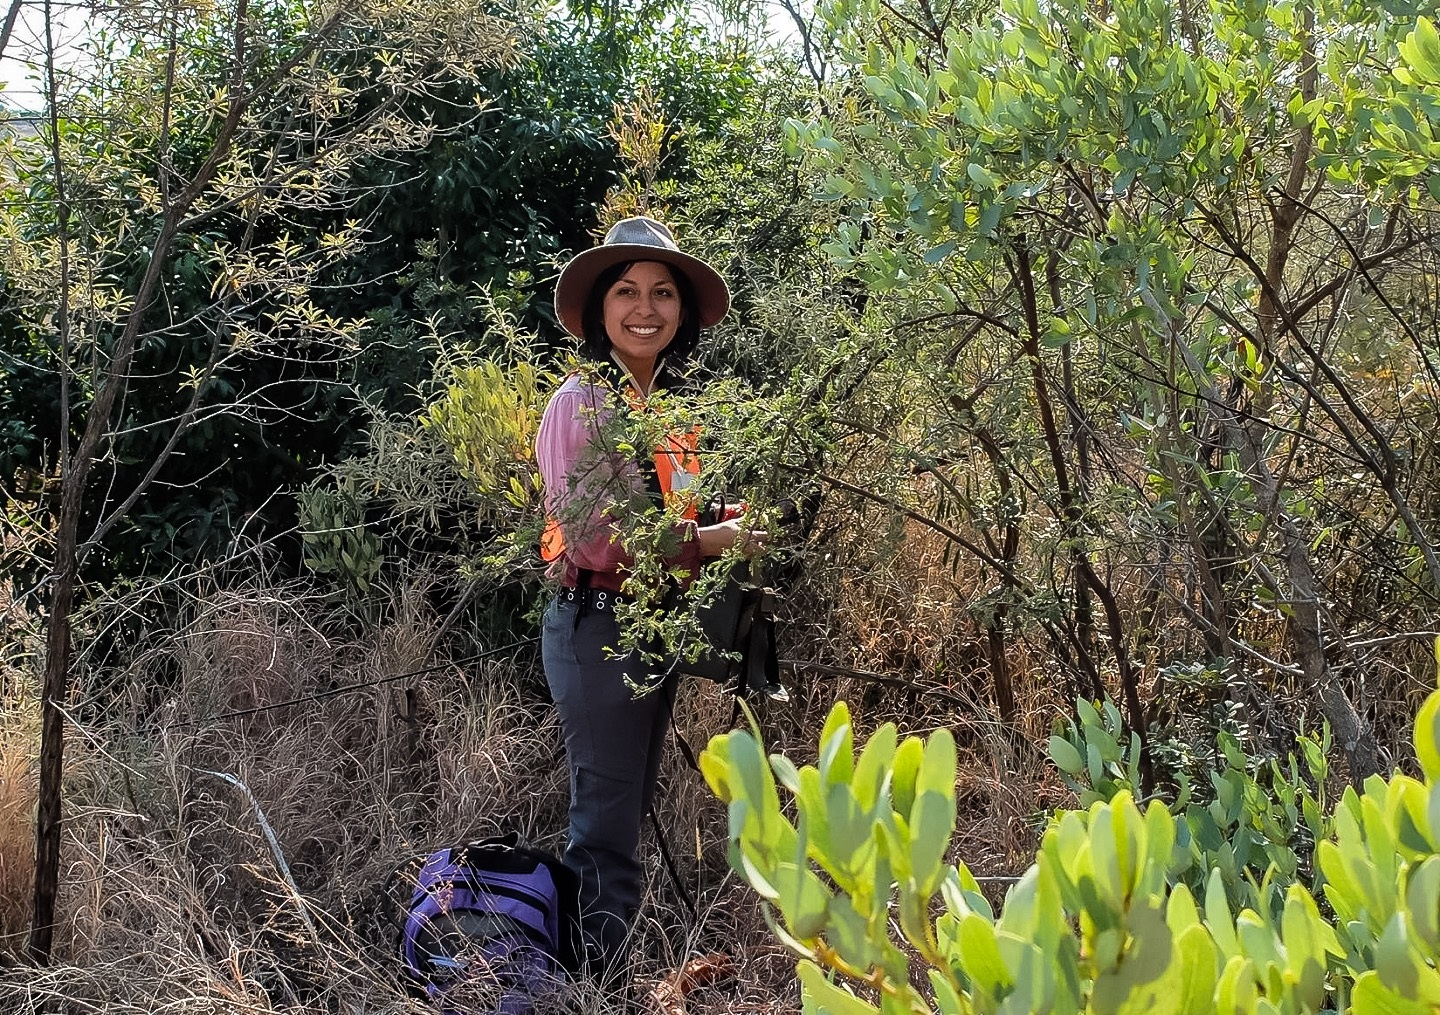 Carranza conducts research in the Bushveld region of South Africa.